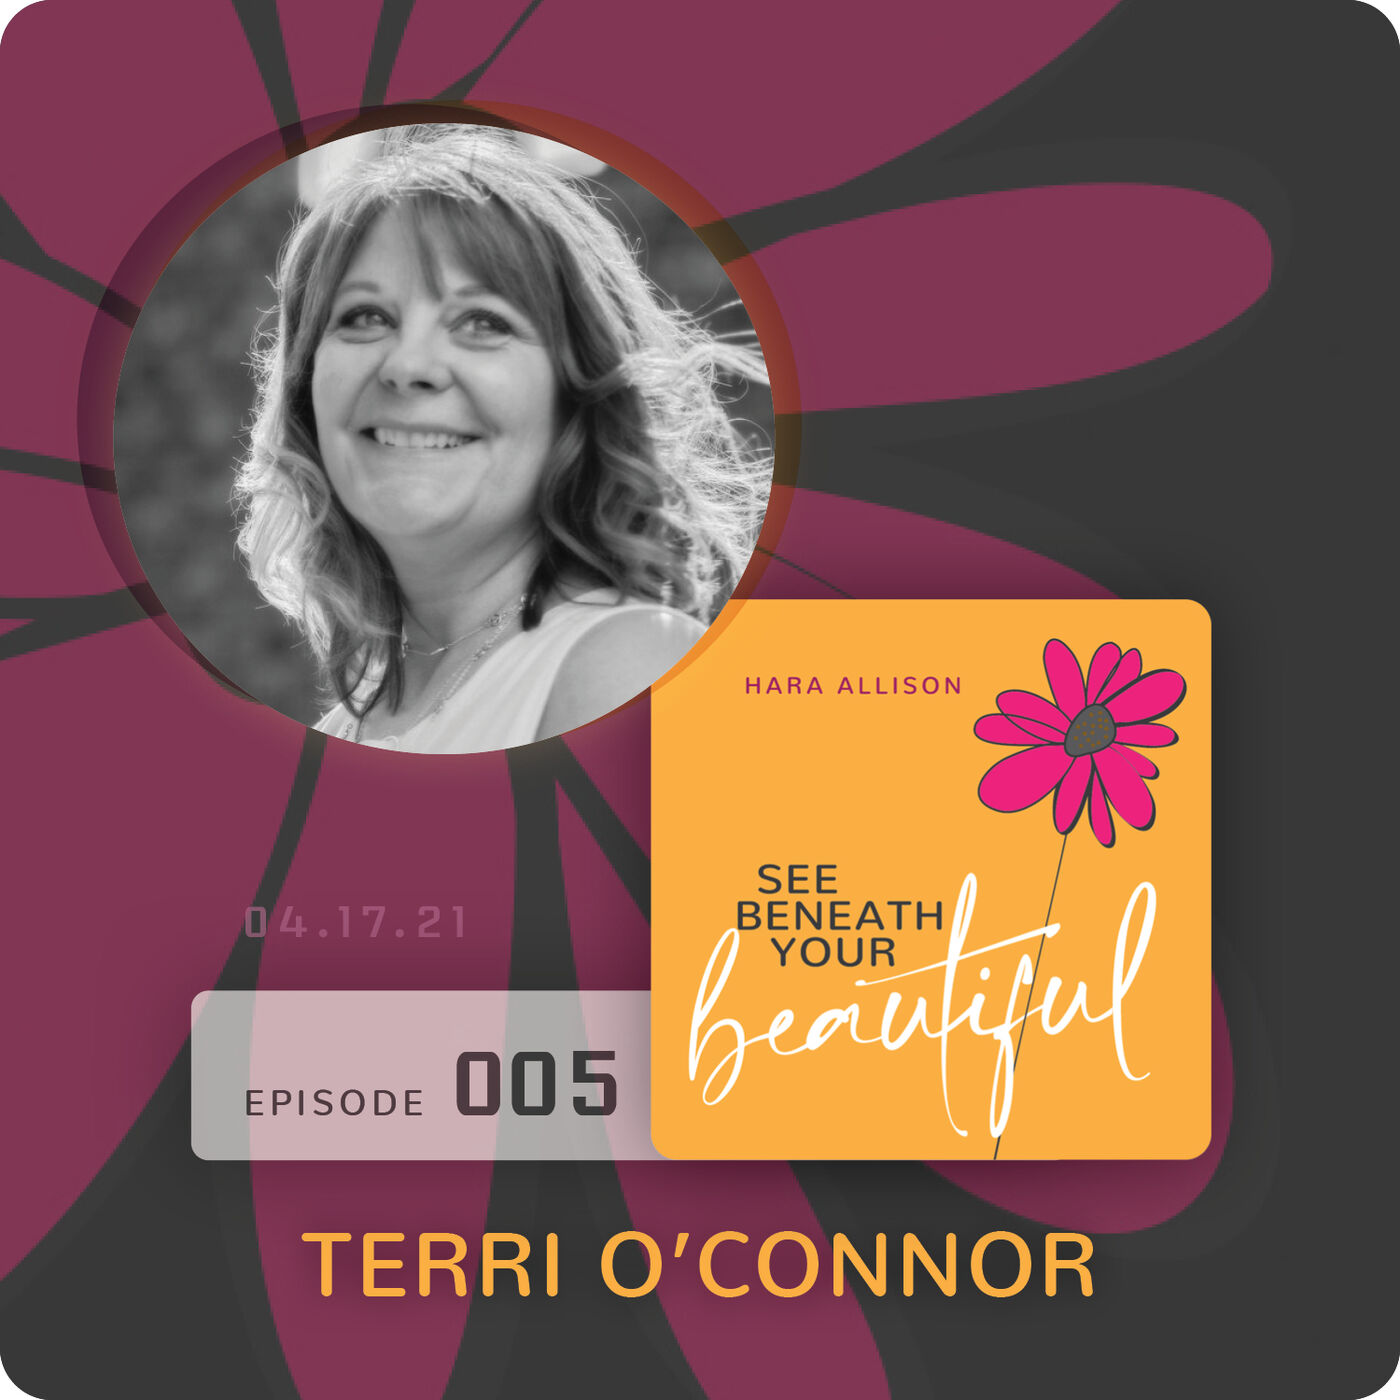 005. Terri O'Connor discusses flowers, Christ, Buddhism, chanting, a happy divorce, the four agreements, and blowing fairy dust out of her arse